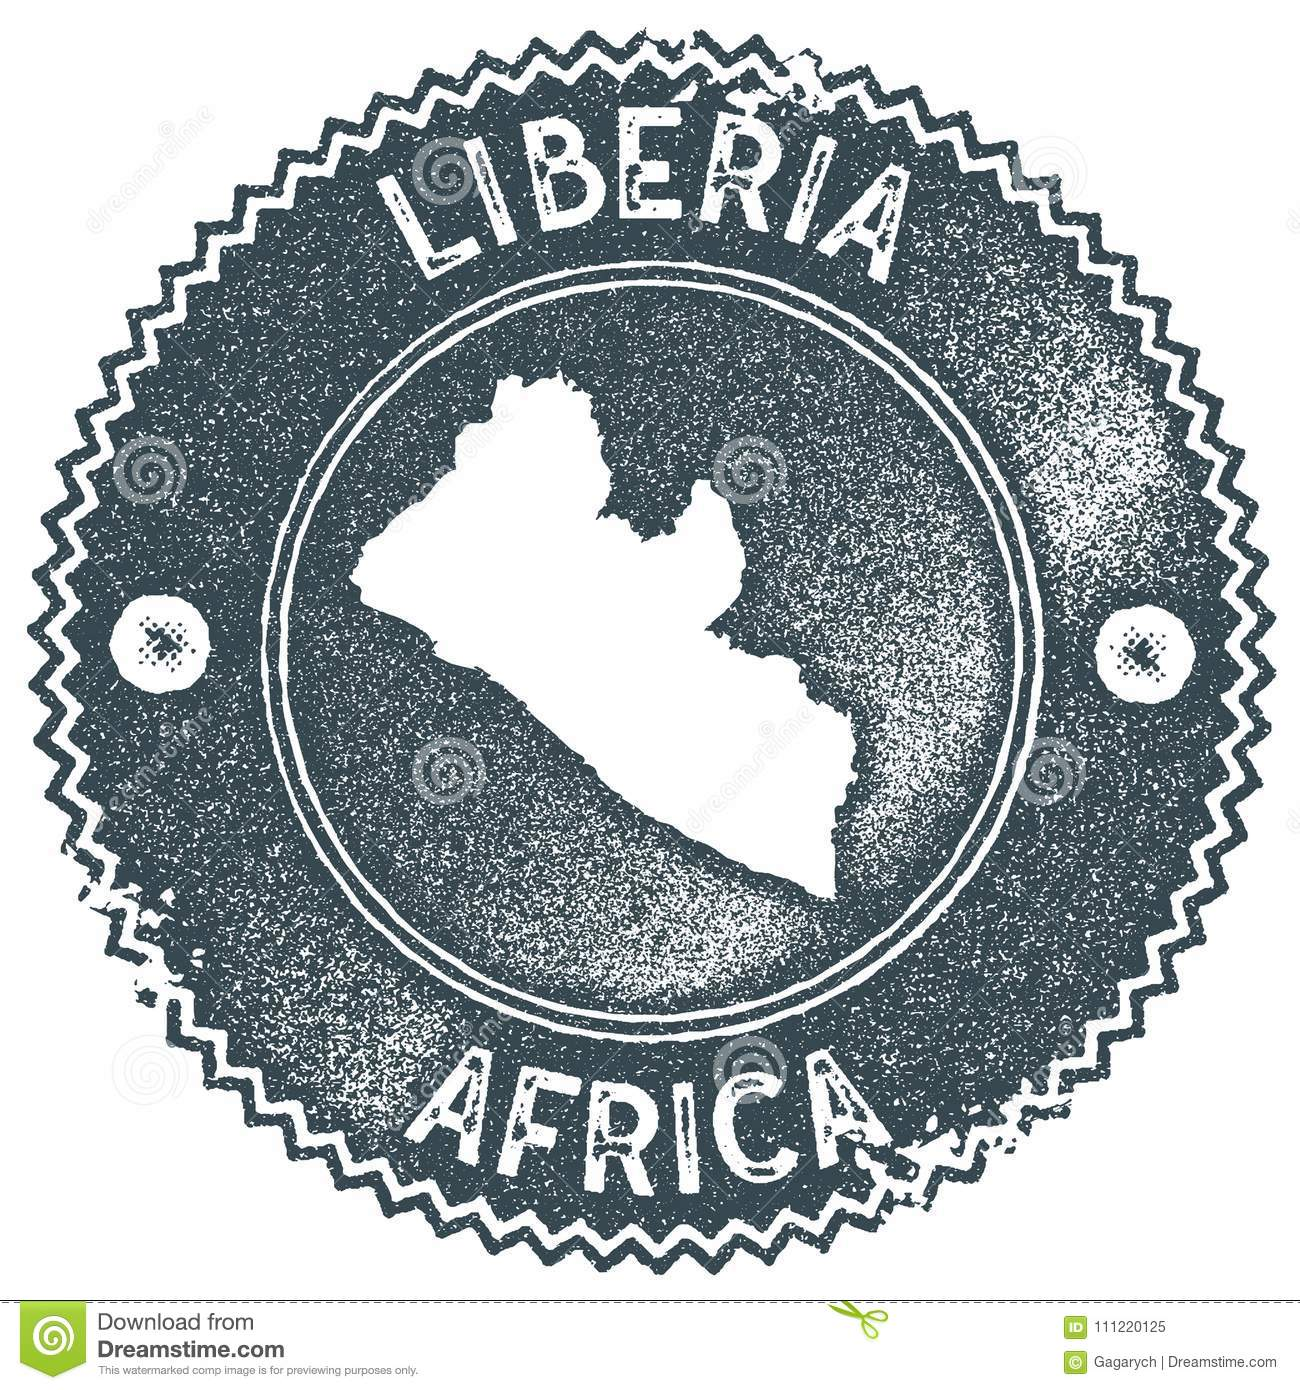 Liberia map vintage stamp stock vector illustration of silhouette download liberia map vintage stamp stock vector illustration of silhouette 111220125 freerunsca Gallery